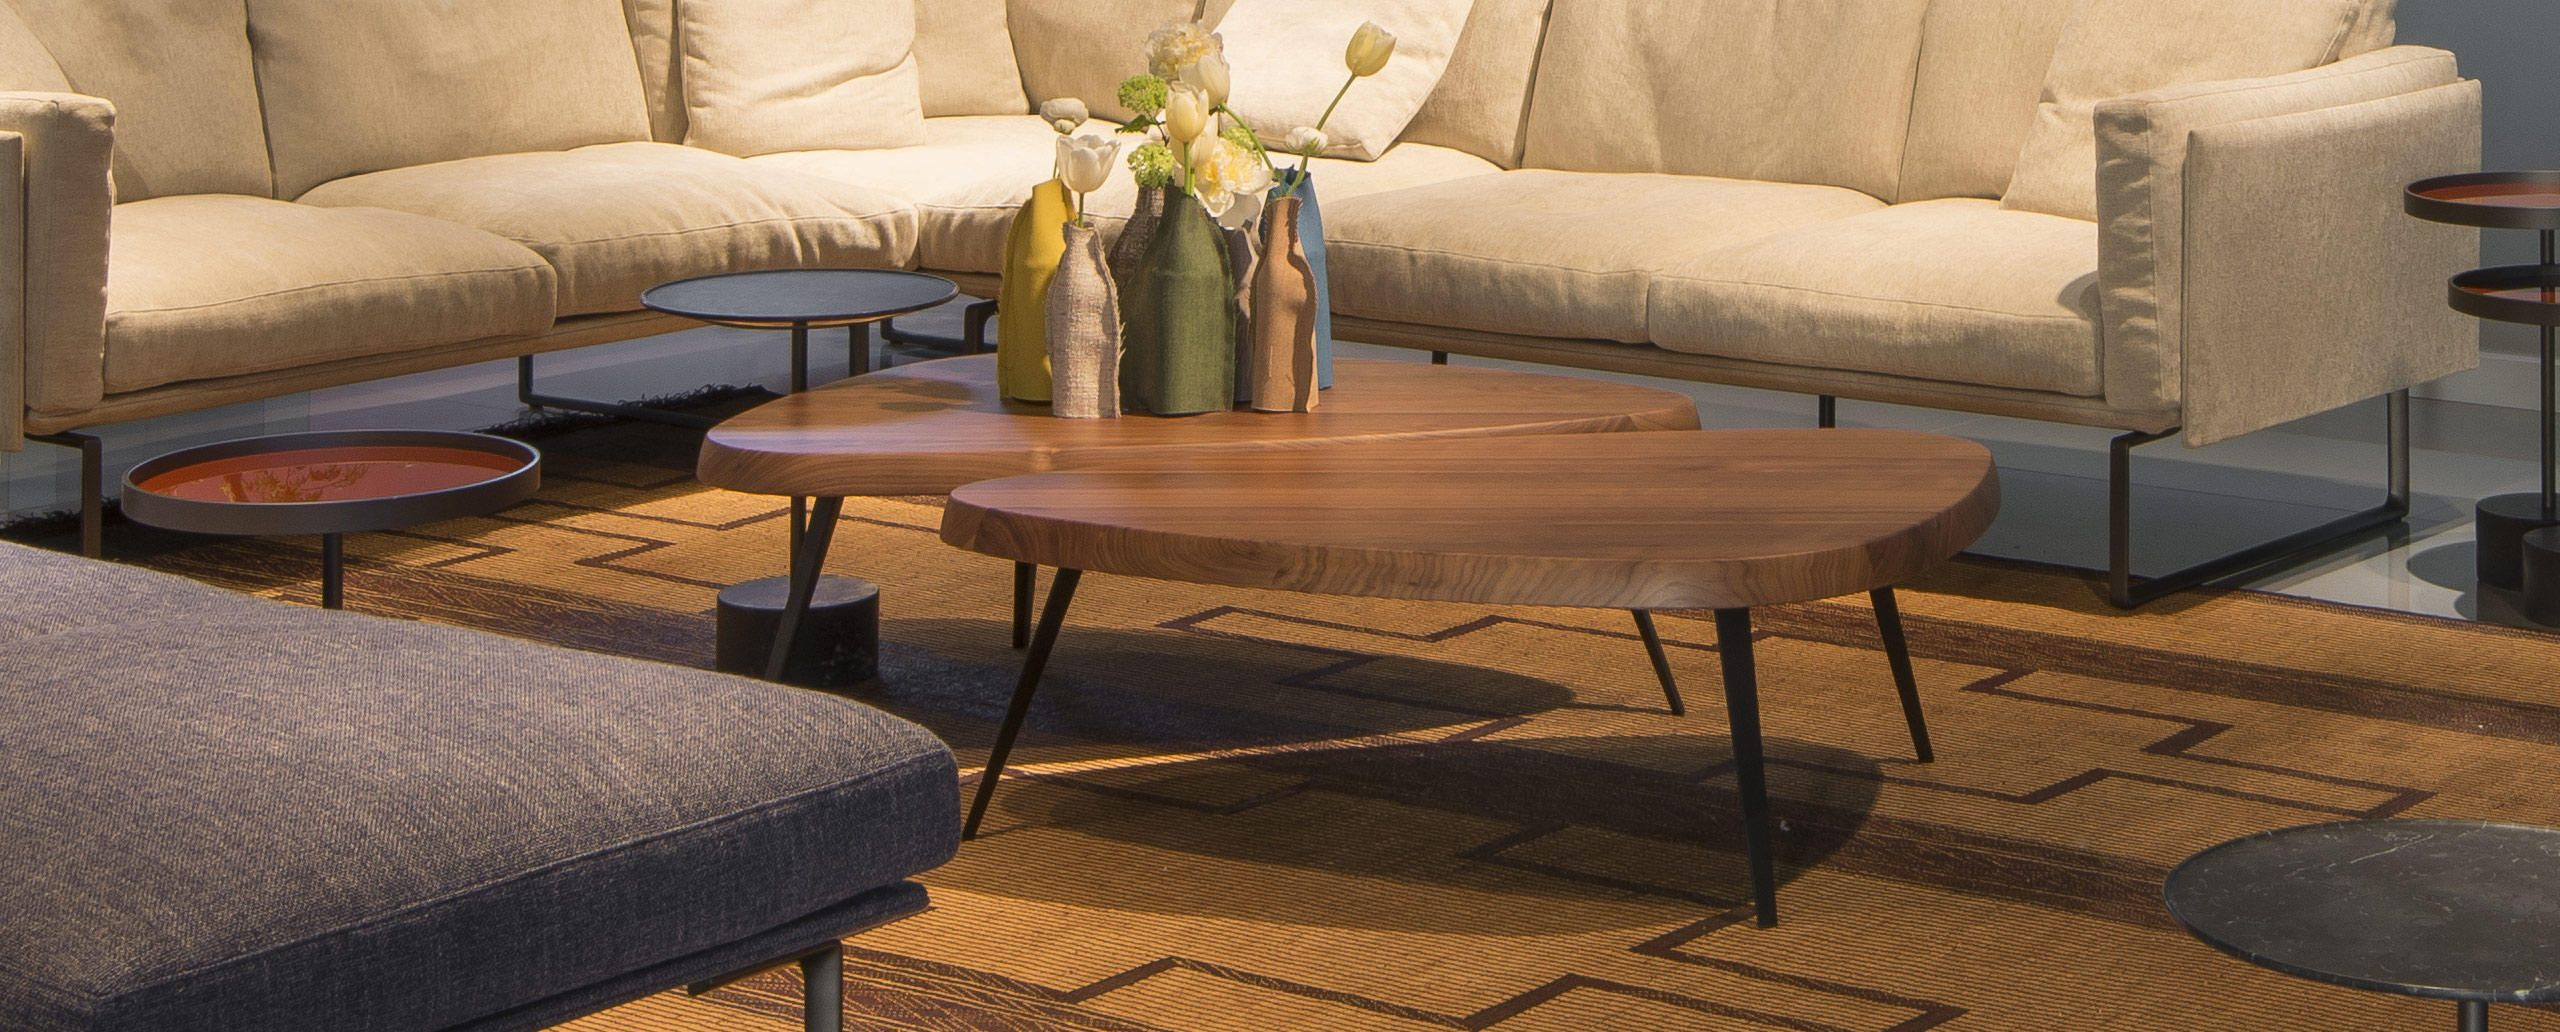 527 Mexique Charlotte Perriand Cassina Coffee Table Italian Furniture Design Low Tables [ 1032 x 2560 Pixel ]